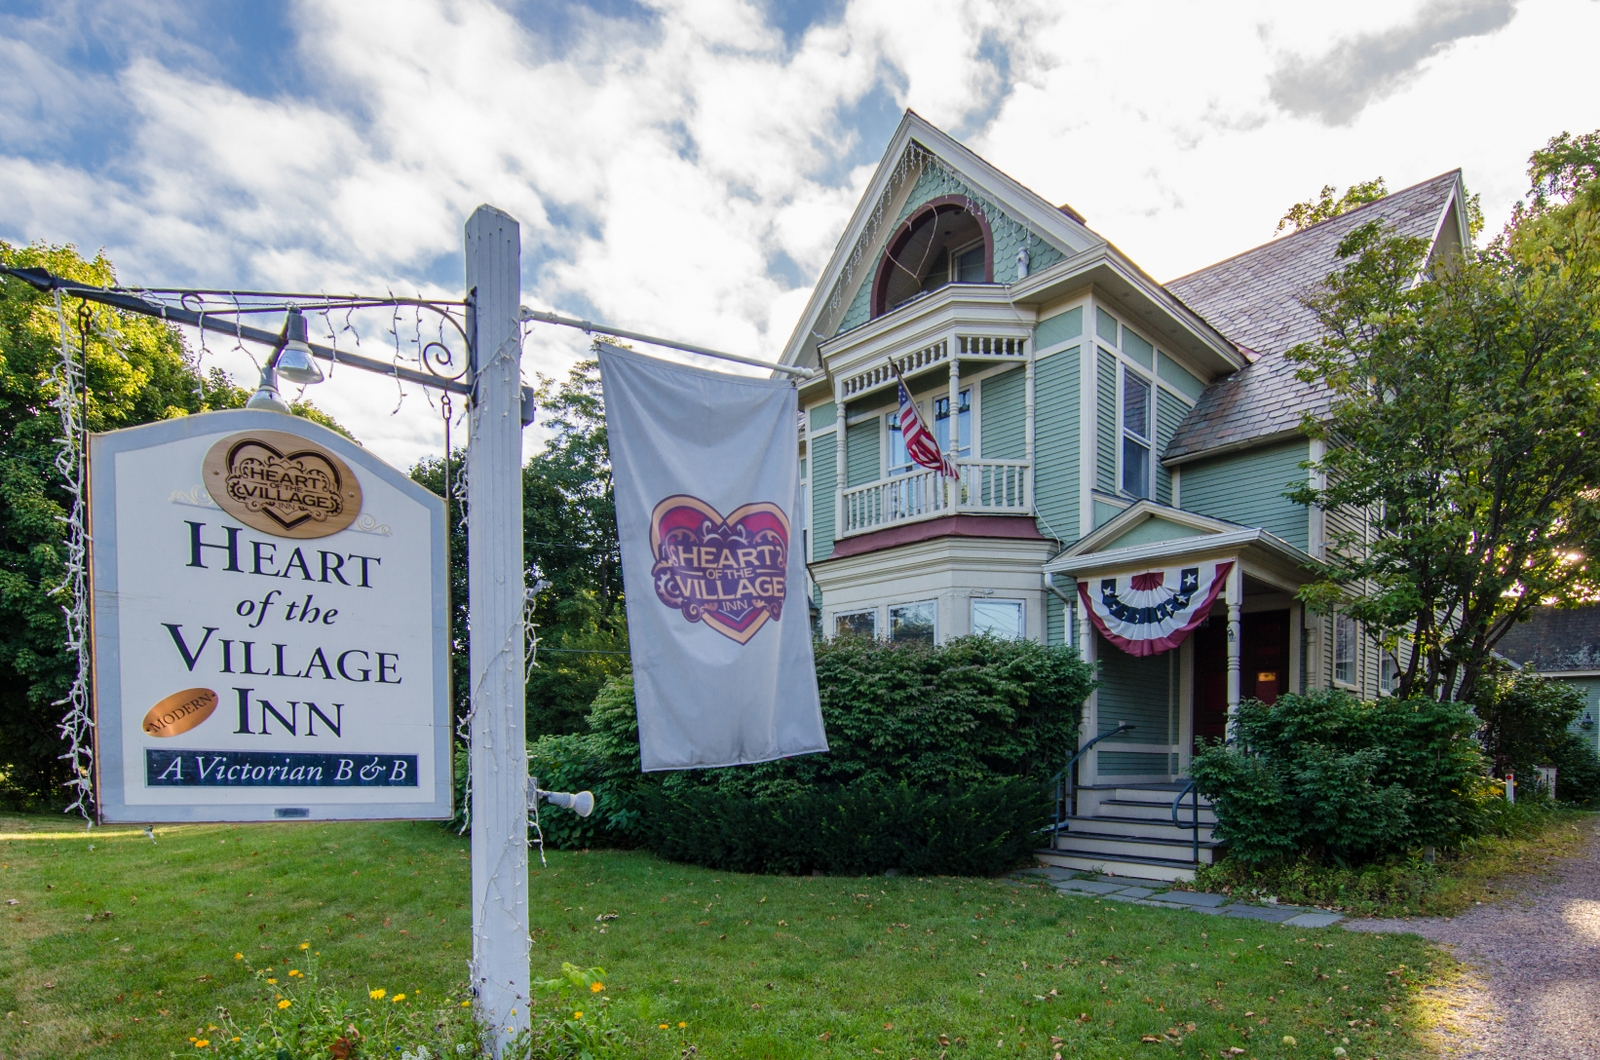 Heart of the Village Inn, Modern Vermont Bed & Breakfast, Shelburne, VT | Bed & Breakfast at 5347 Shelburne Rd - Shelburne VT - Reviews - Photos - Phone Number